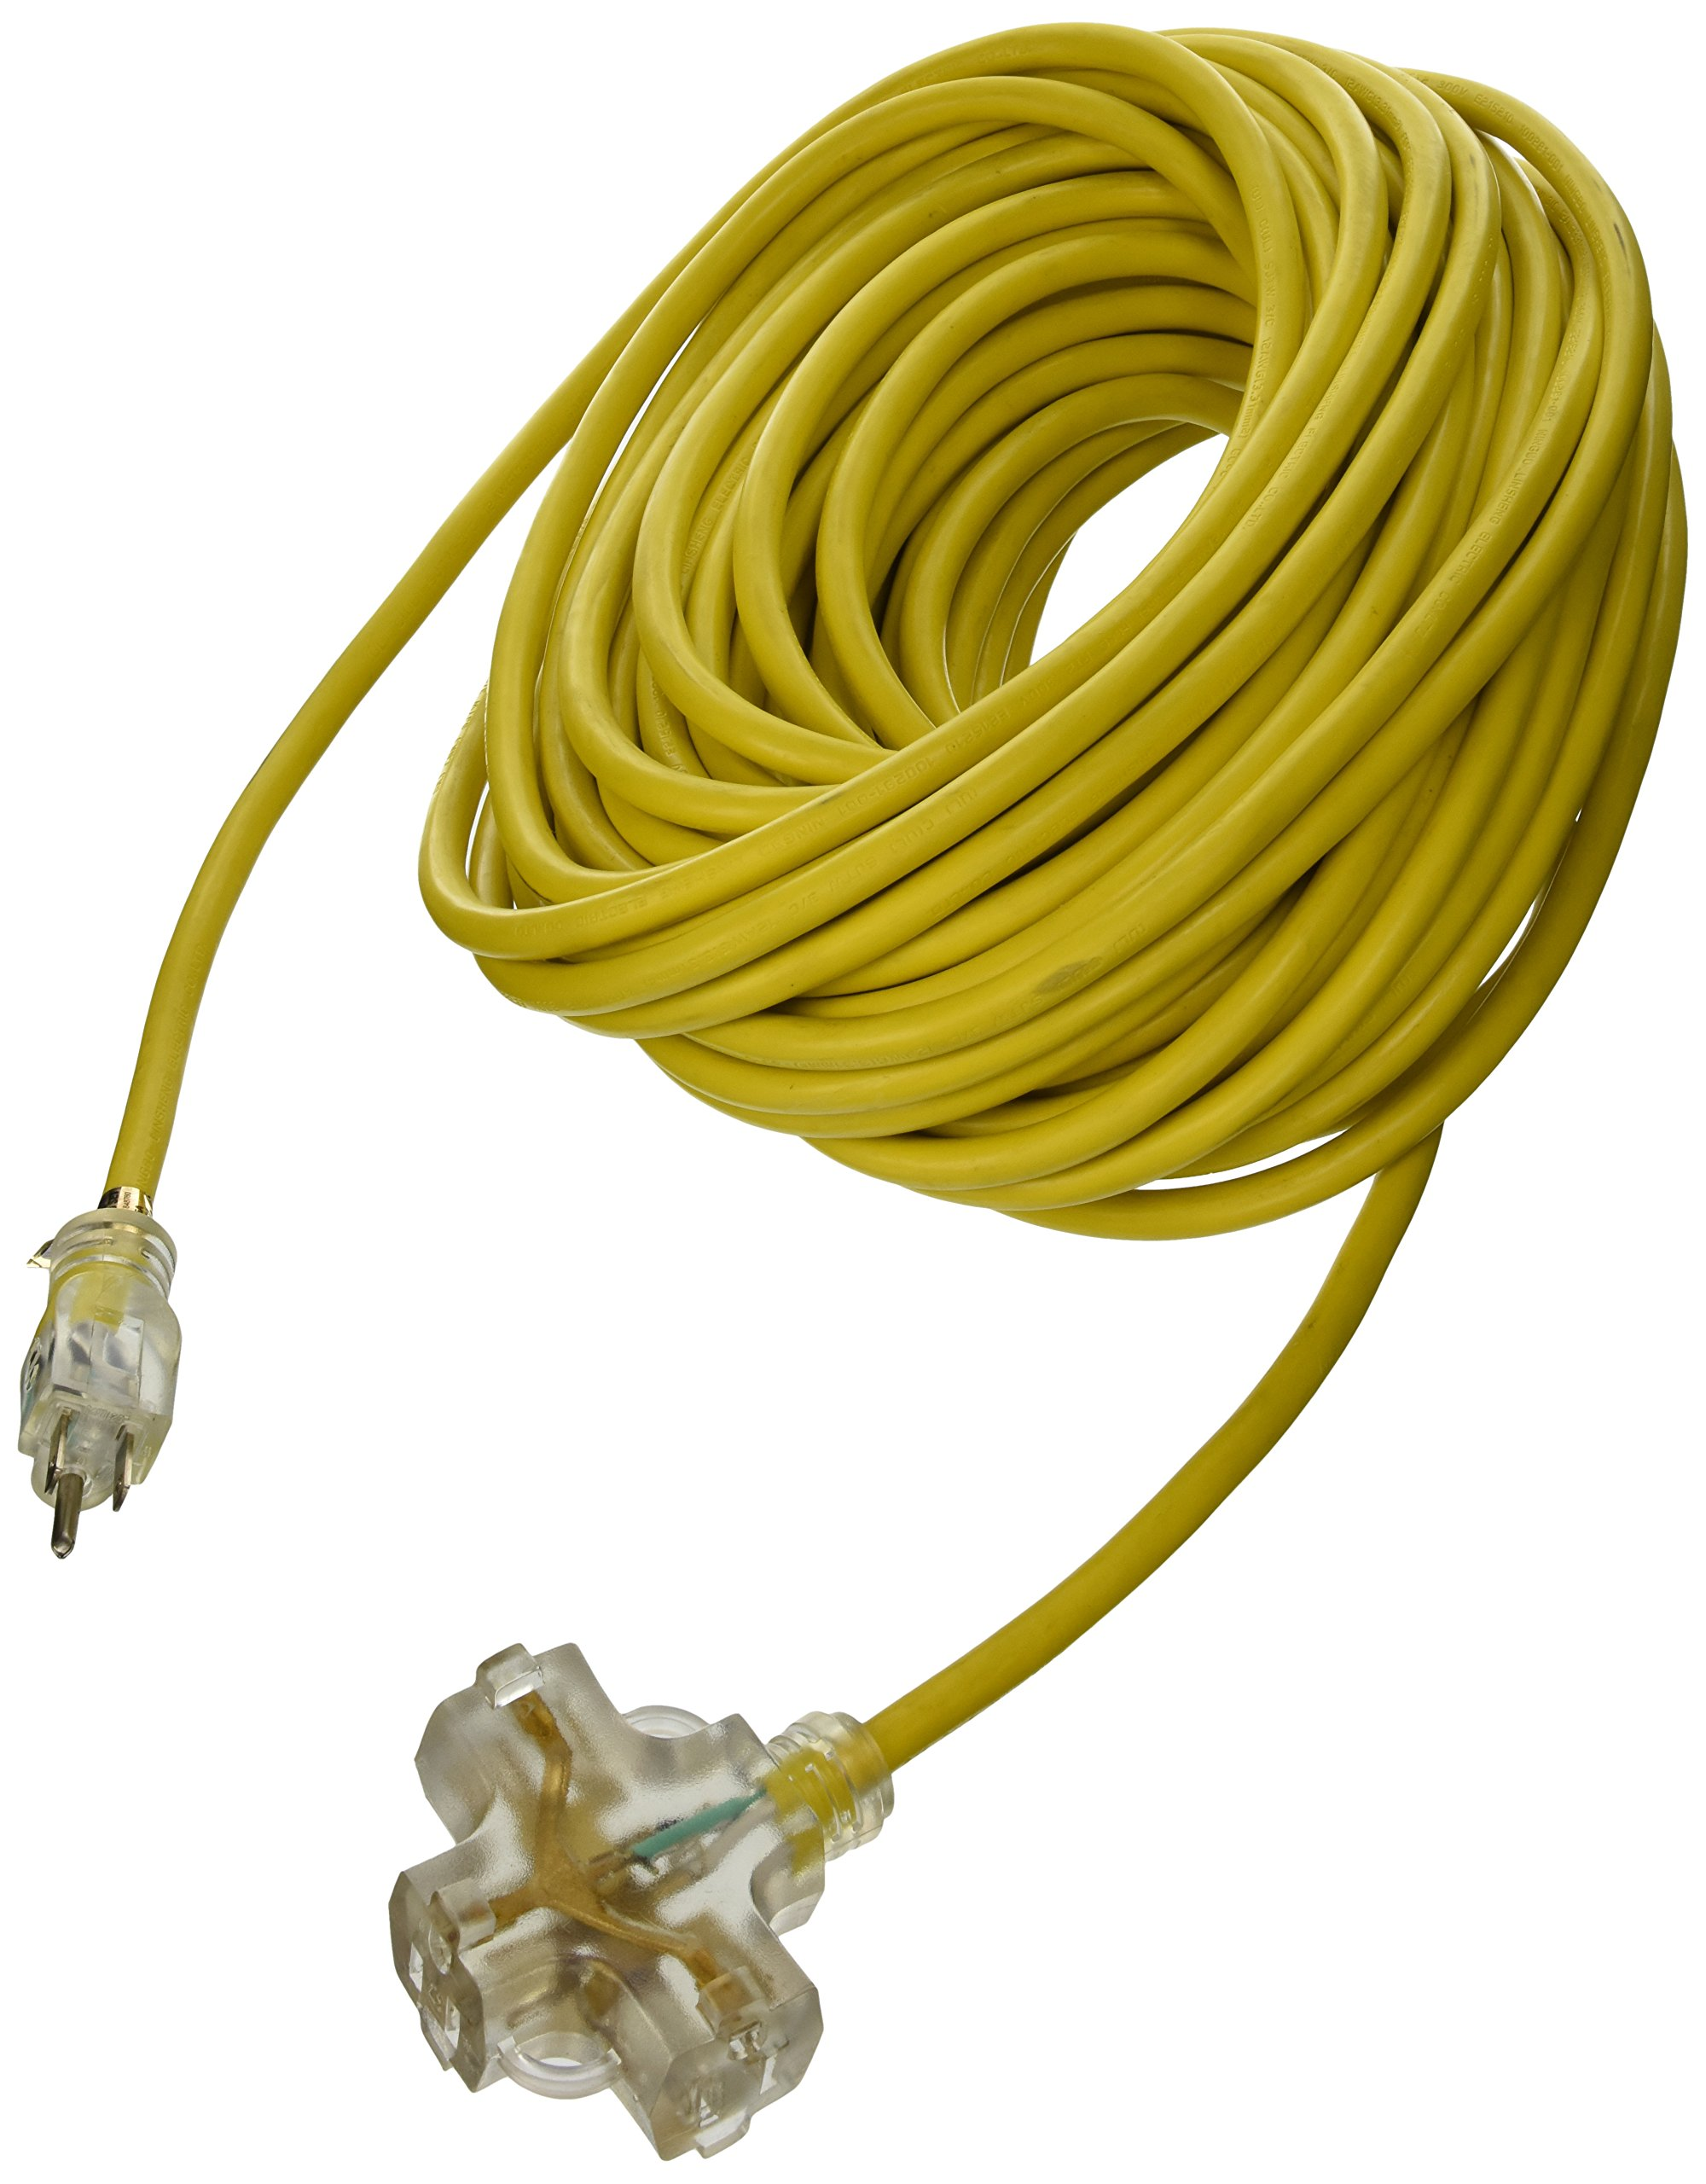 ATE Pro. USA 70055 Extension Cord, 100', 12 Gauge, 3-Prong